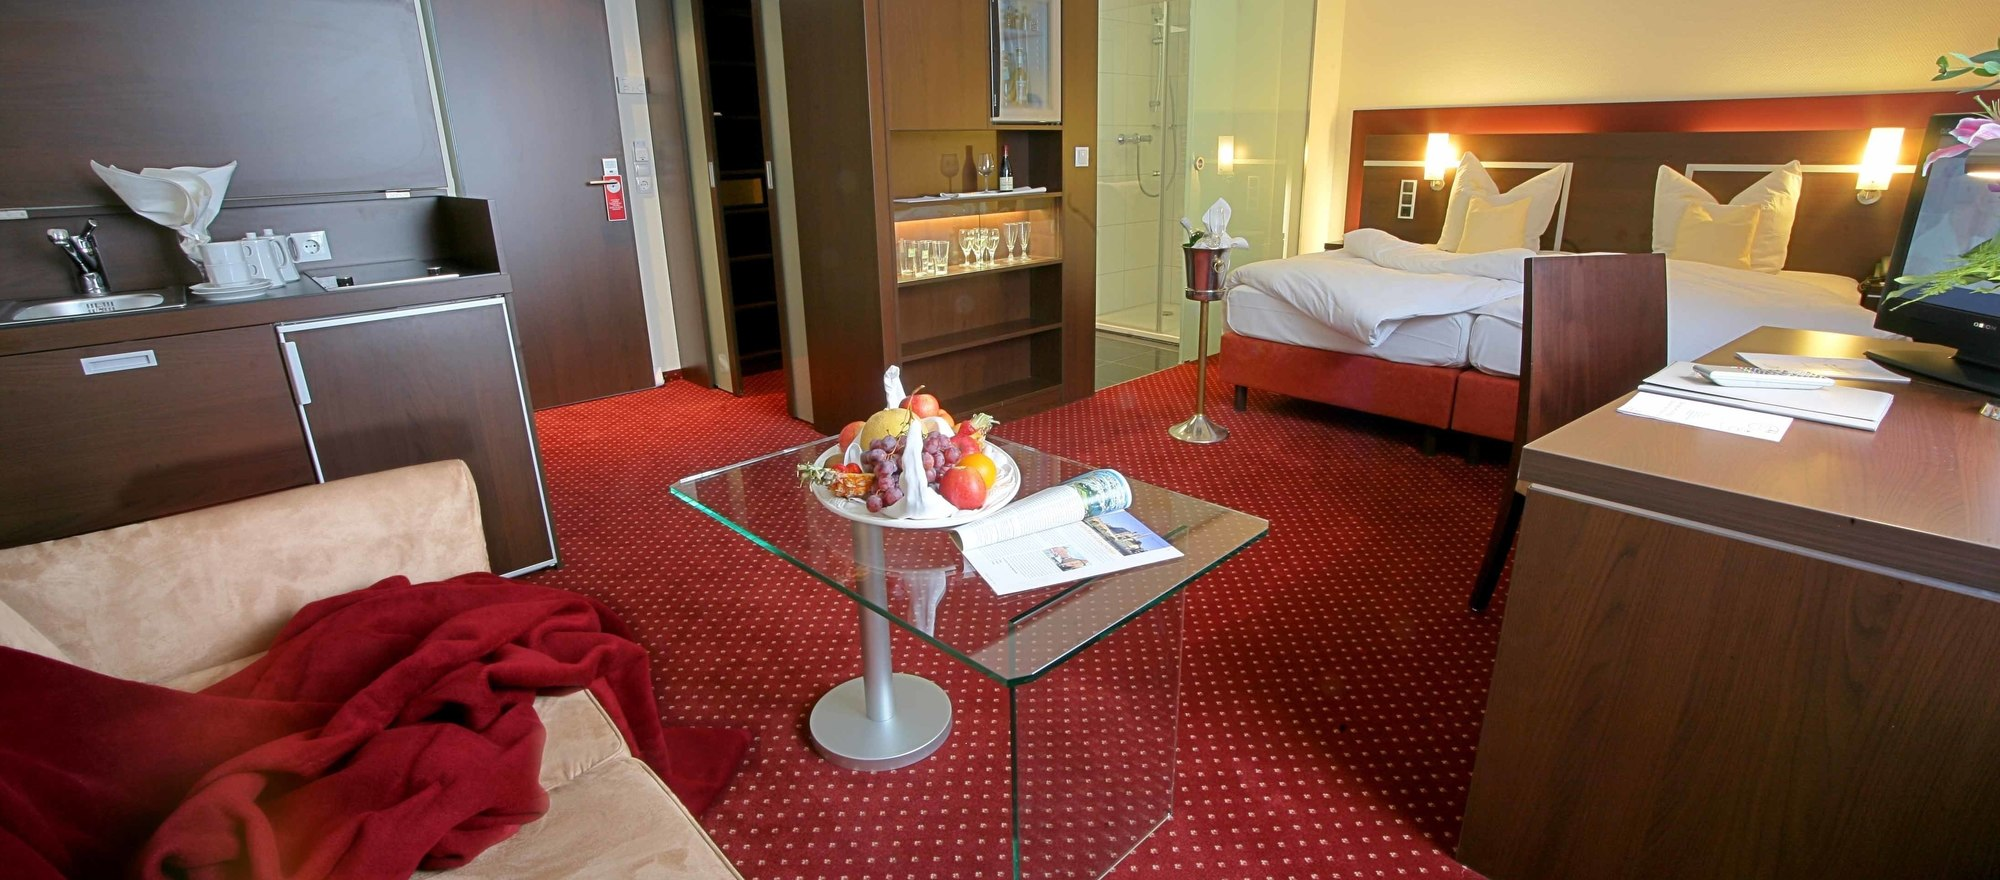 Stylishly decorated guest rooms at the 4-star Ringhotel Drees in Dortmund